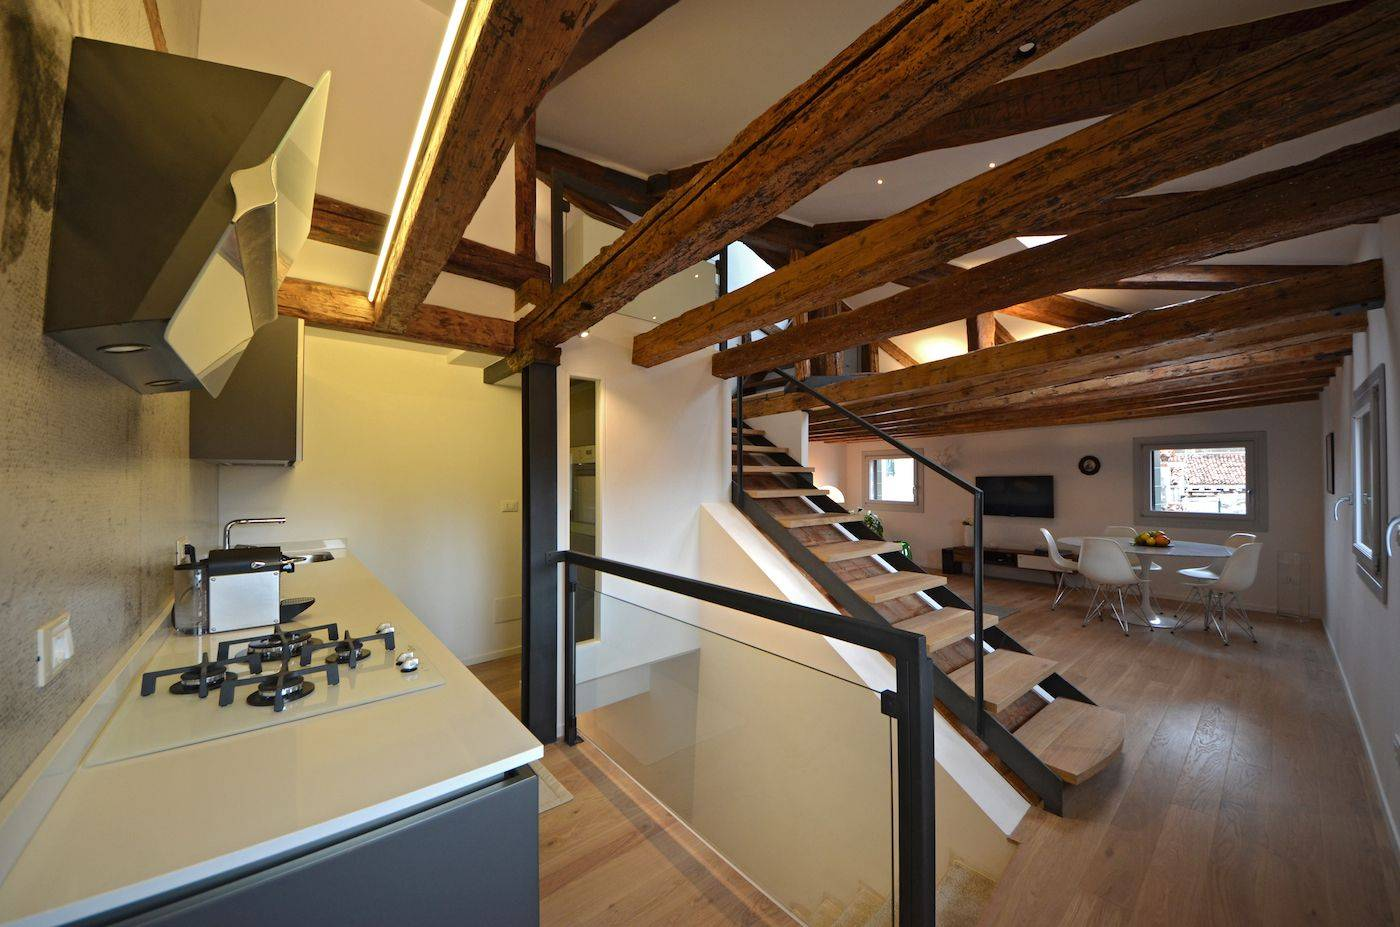 between the kitchen and the living room there is an easy to climb staircase leading to the attic and terrace